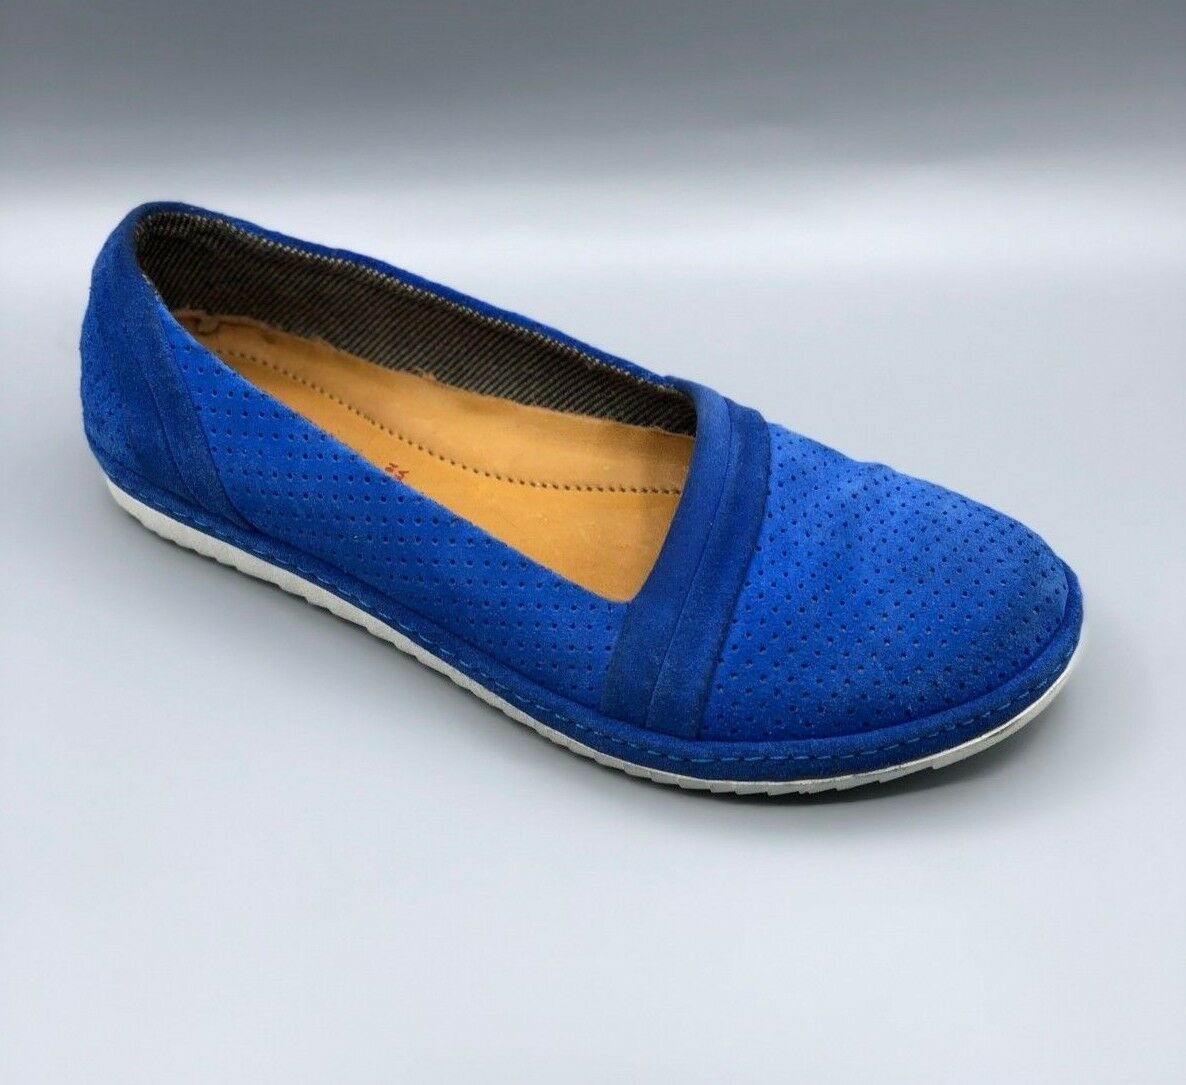 NEW Clarks  African Guide  Ladies bluee Suede Flat Comfy shoes UK 4 D